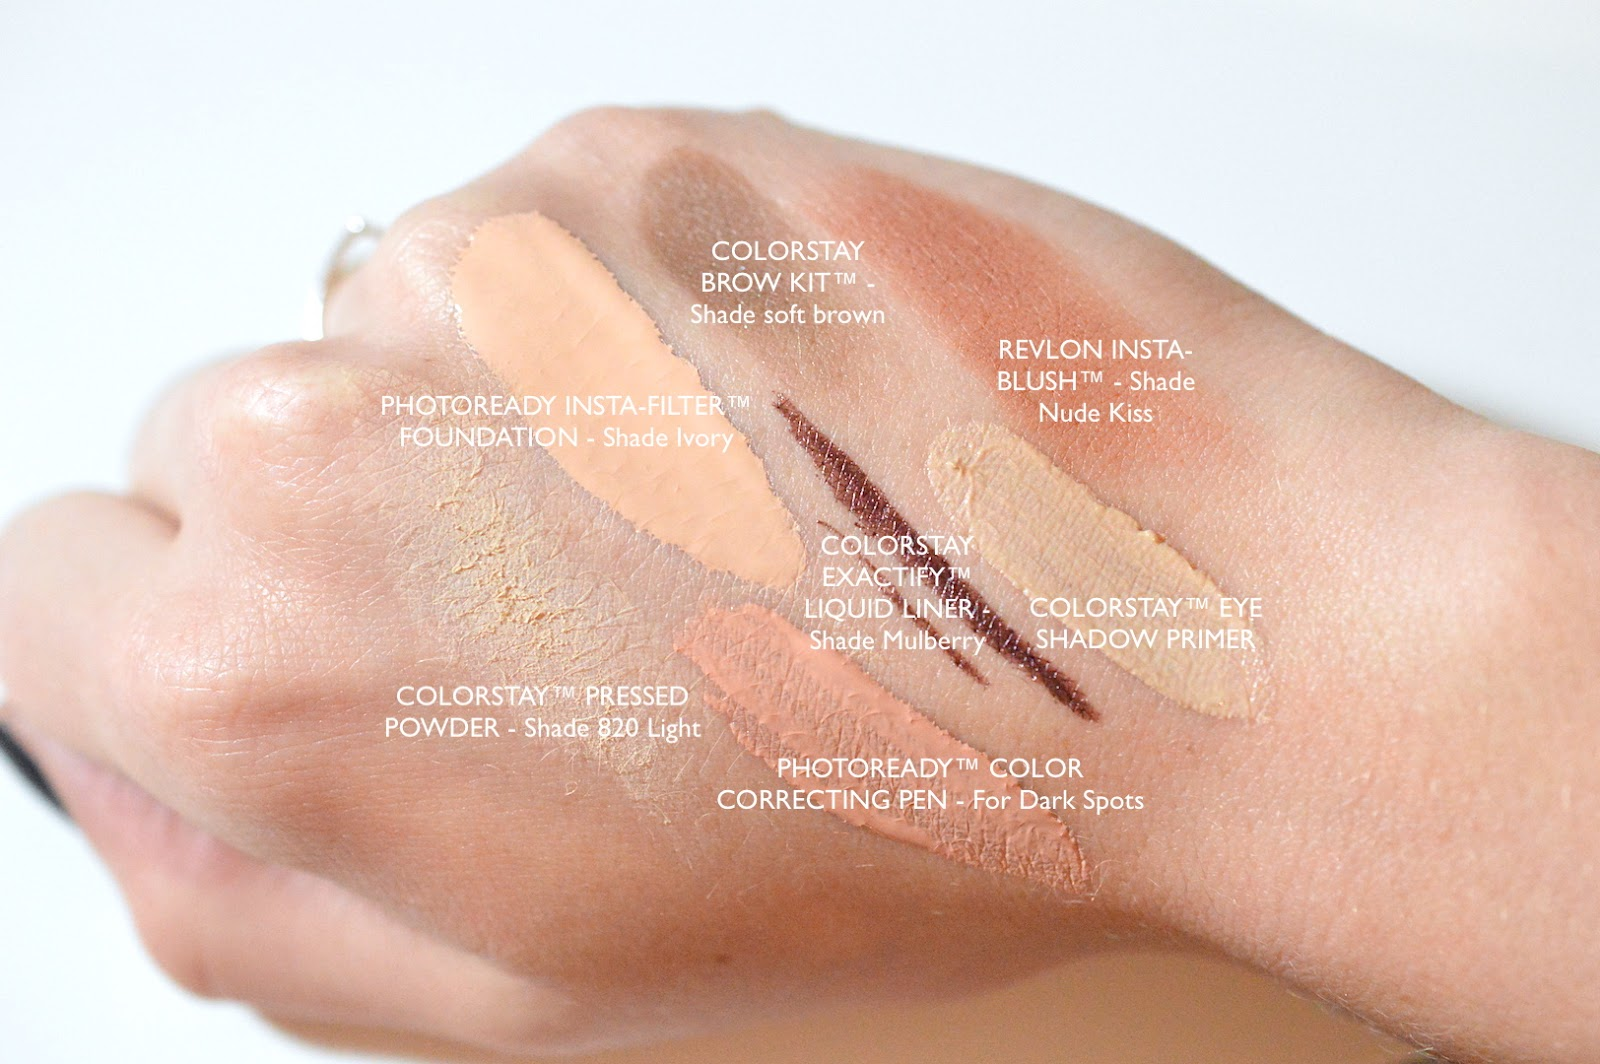 Revlon Product Swatches